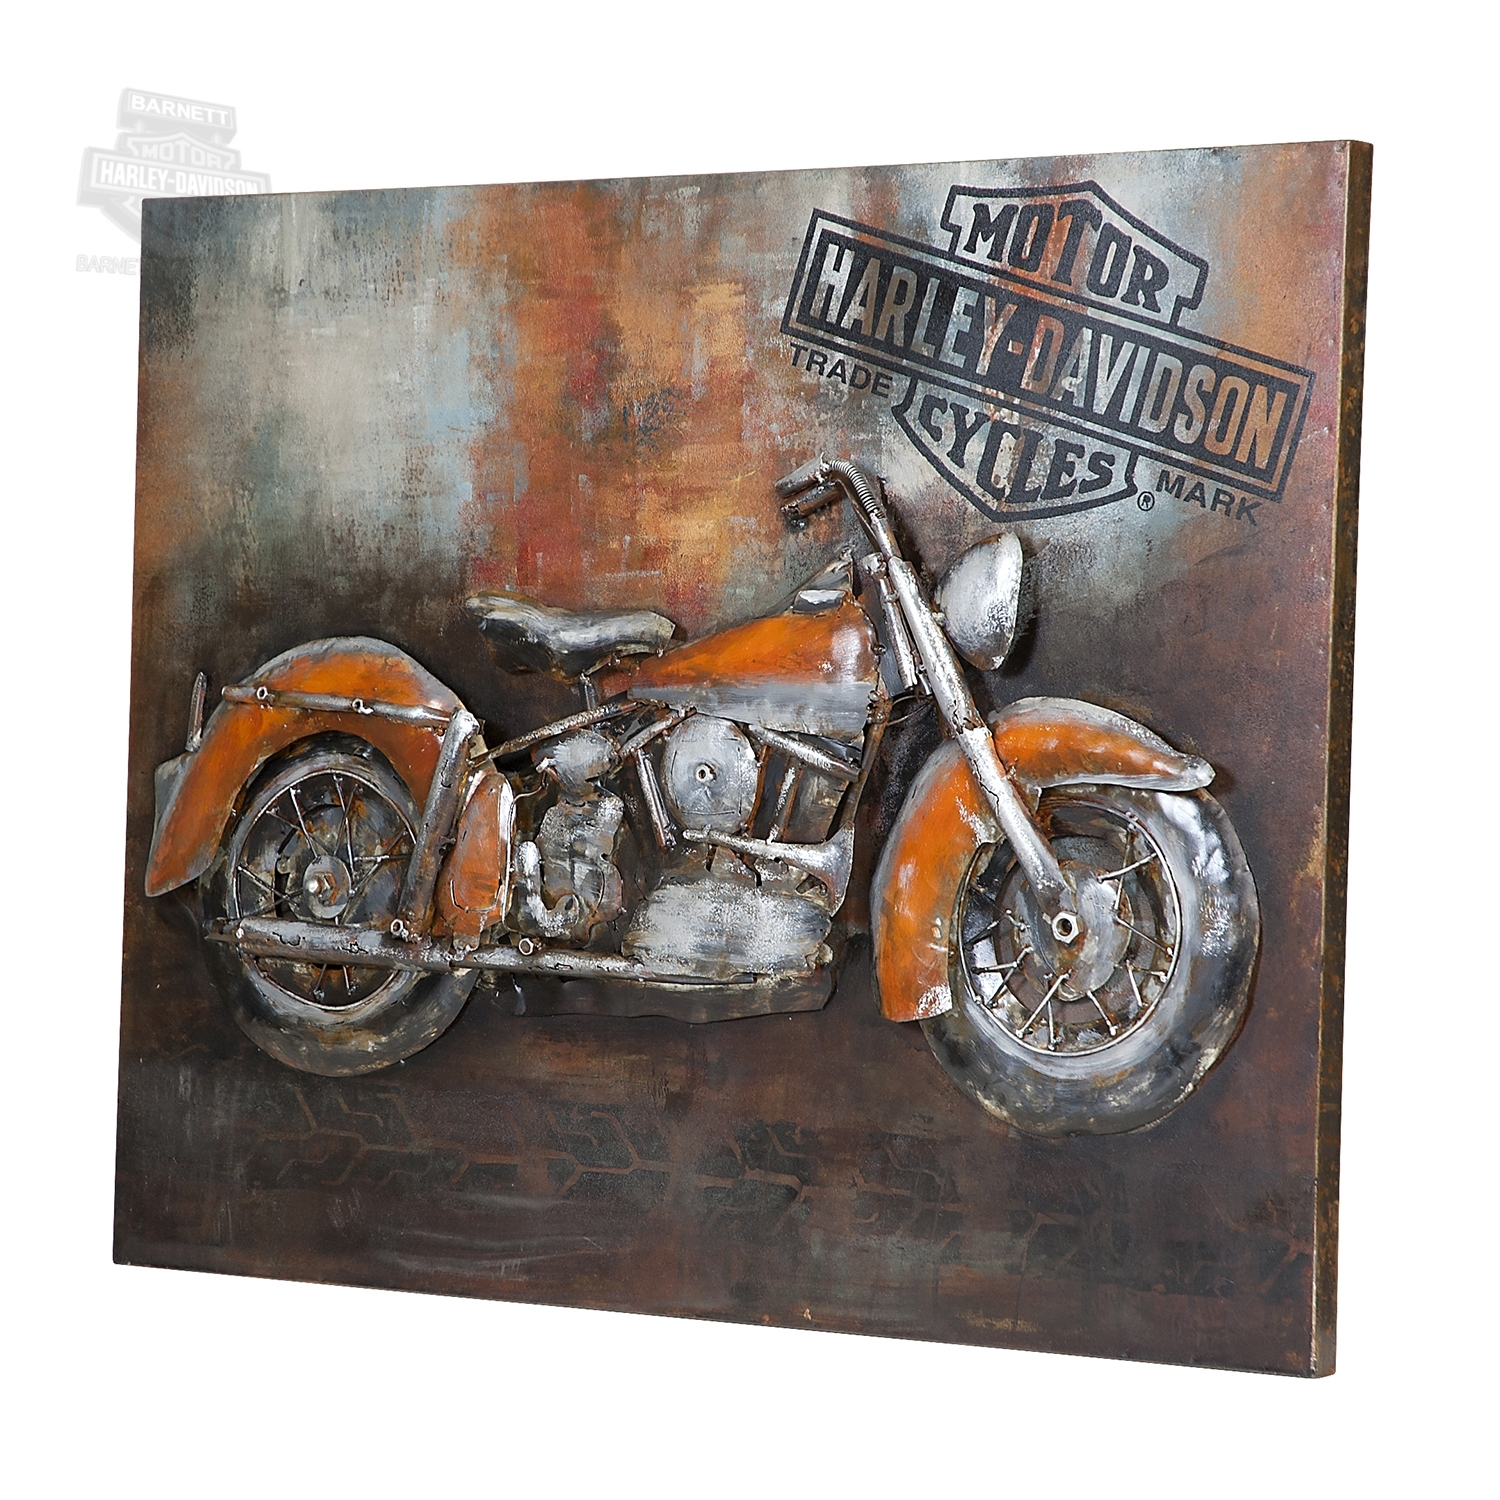 Wall Art Designs: Harley Davidson Wall Art Harley Davidson Limited Within Most Recent Limited Edition Wall Art (View 18 of 20)